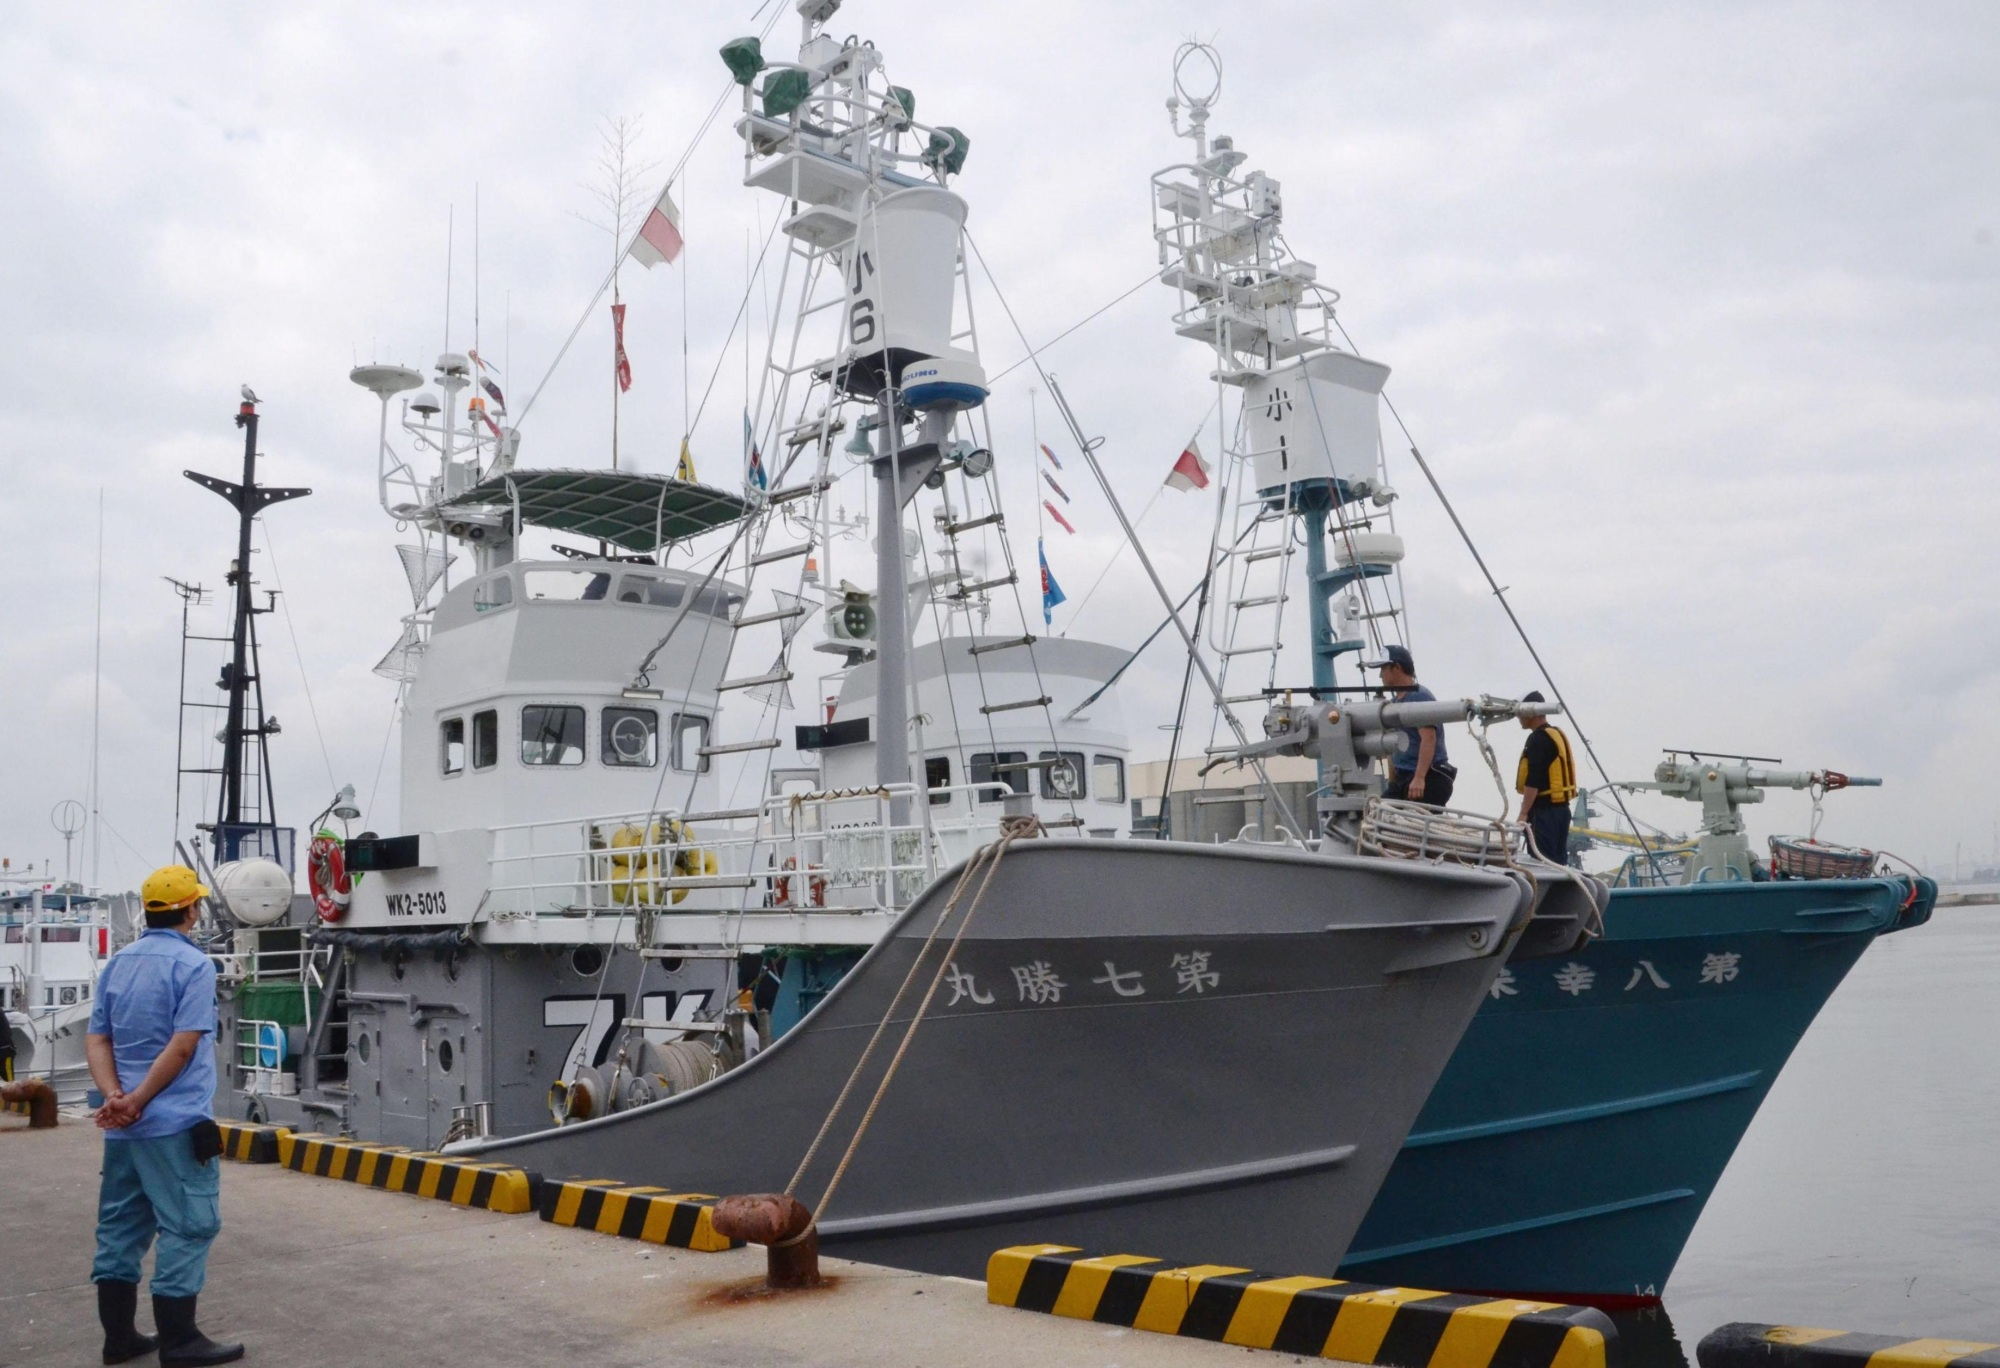 Whaling vessels are set to leave Hachinohe port in Aomori Prefecture on Tuesday, to conduct what the government calls research whaling in the Pacific. | KYODO